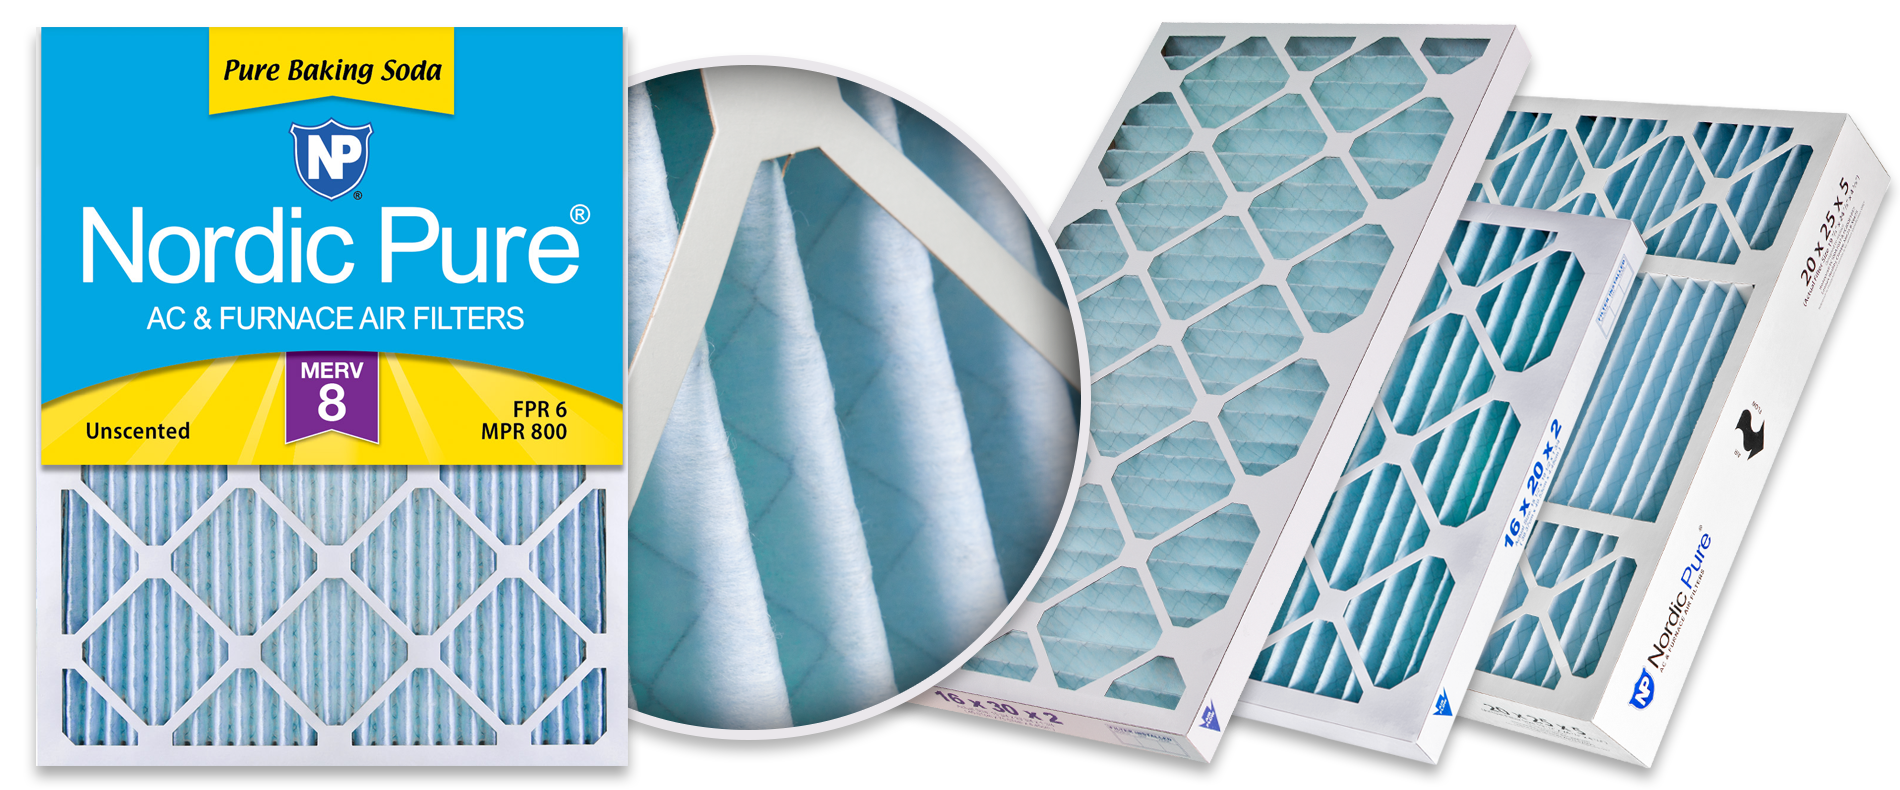 Nordic Pure Pure Baking Soda Air Filter - Best for Odors